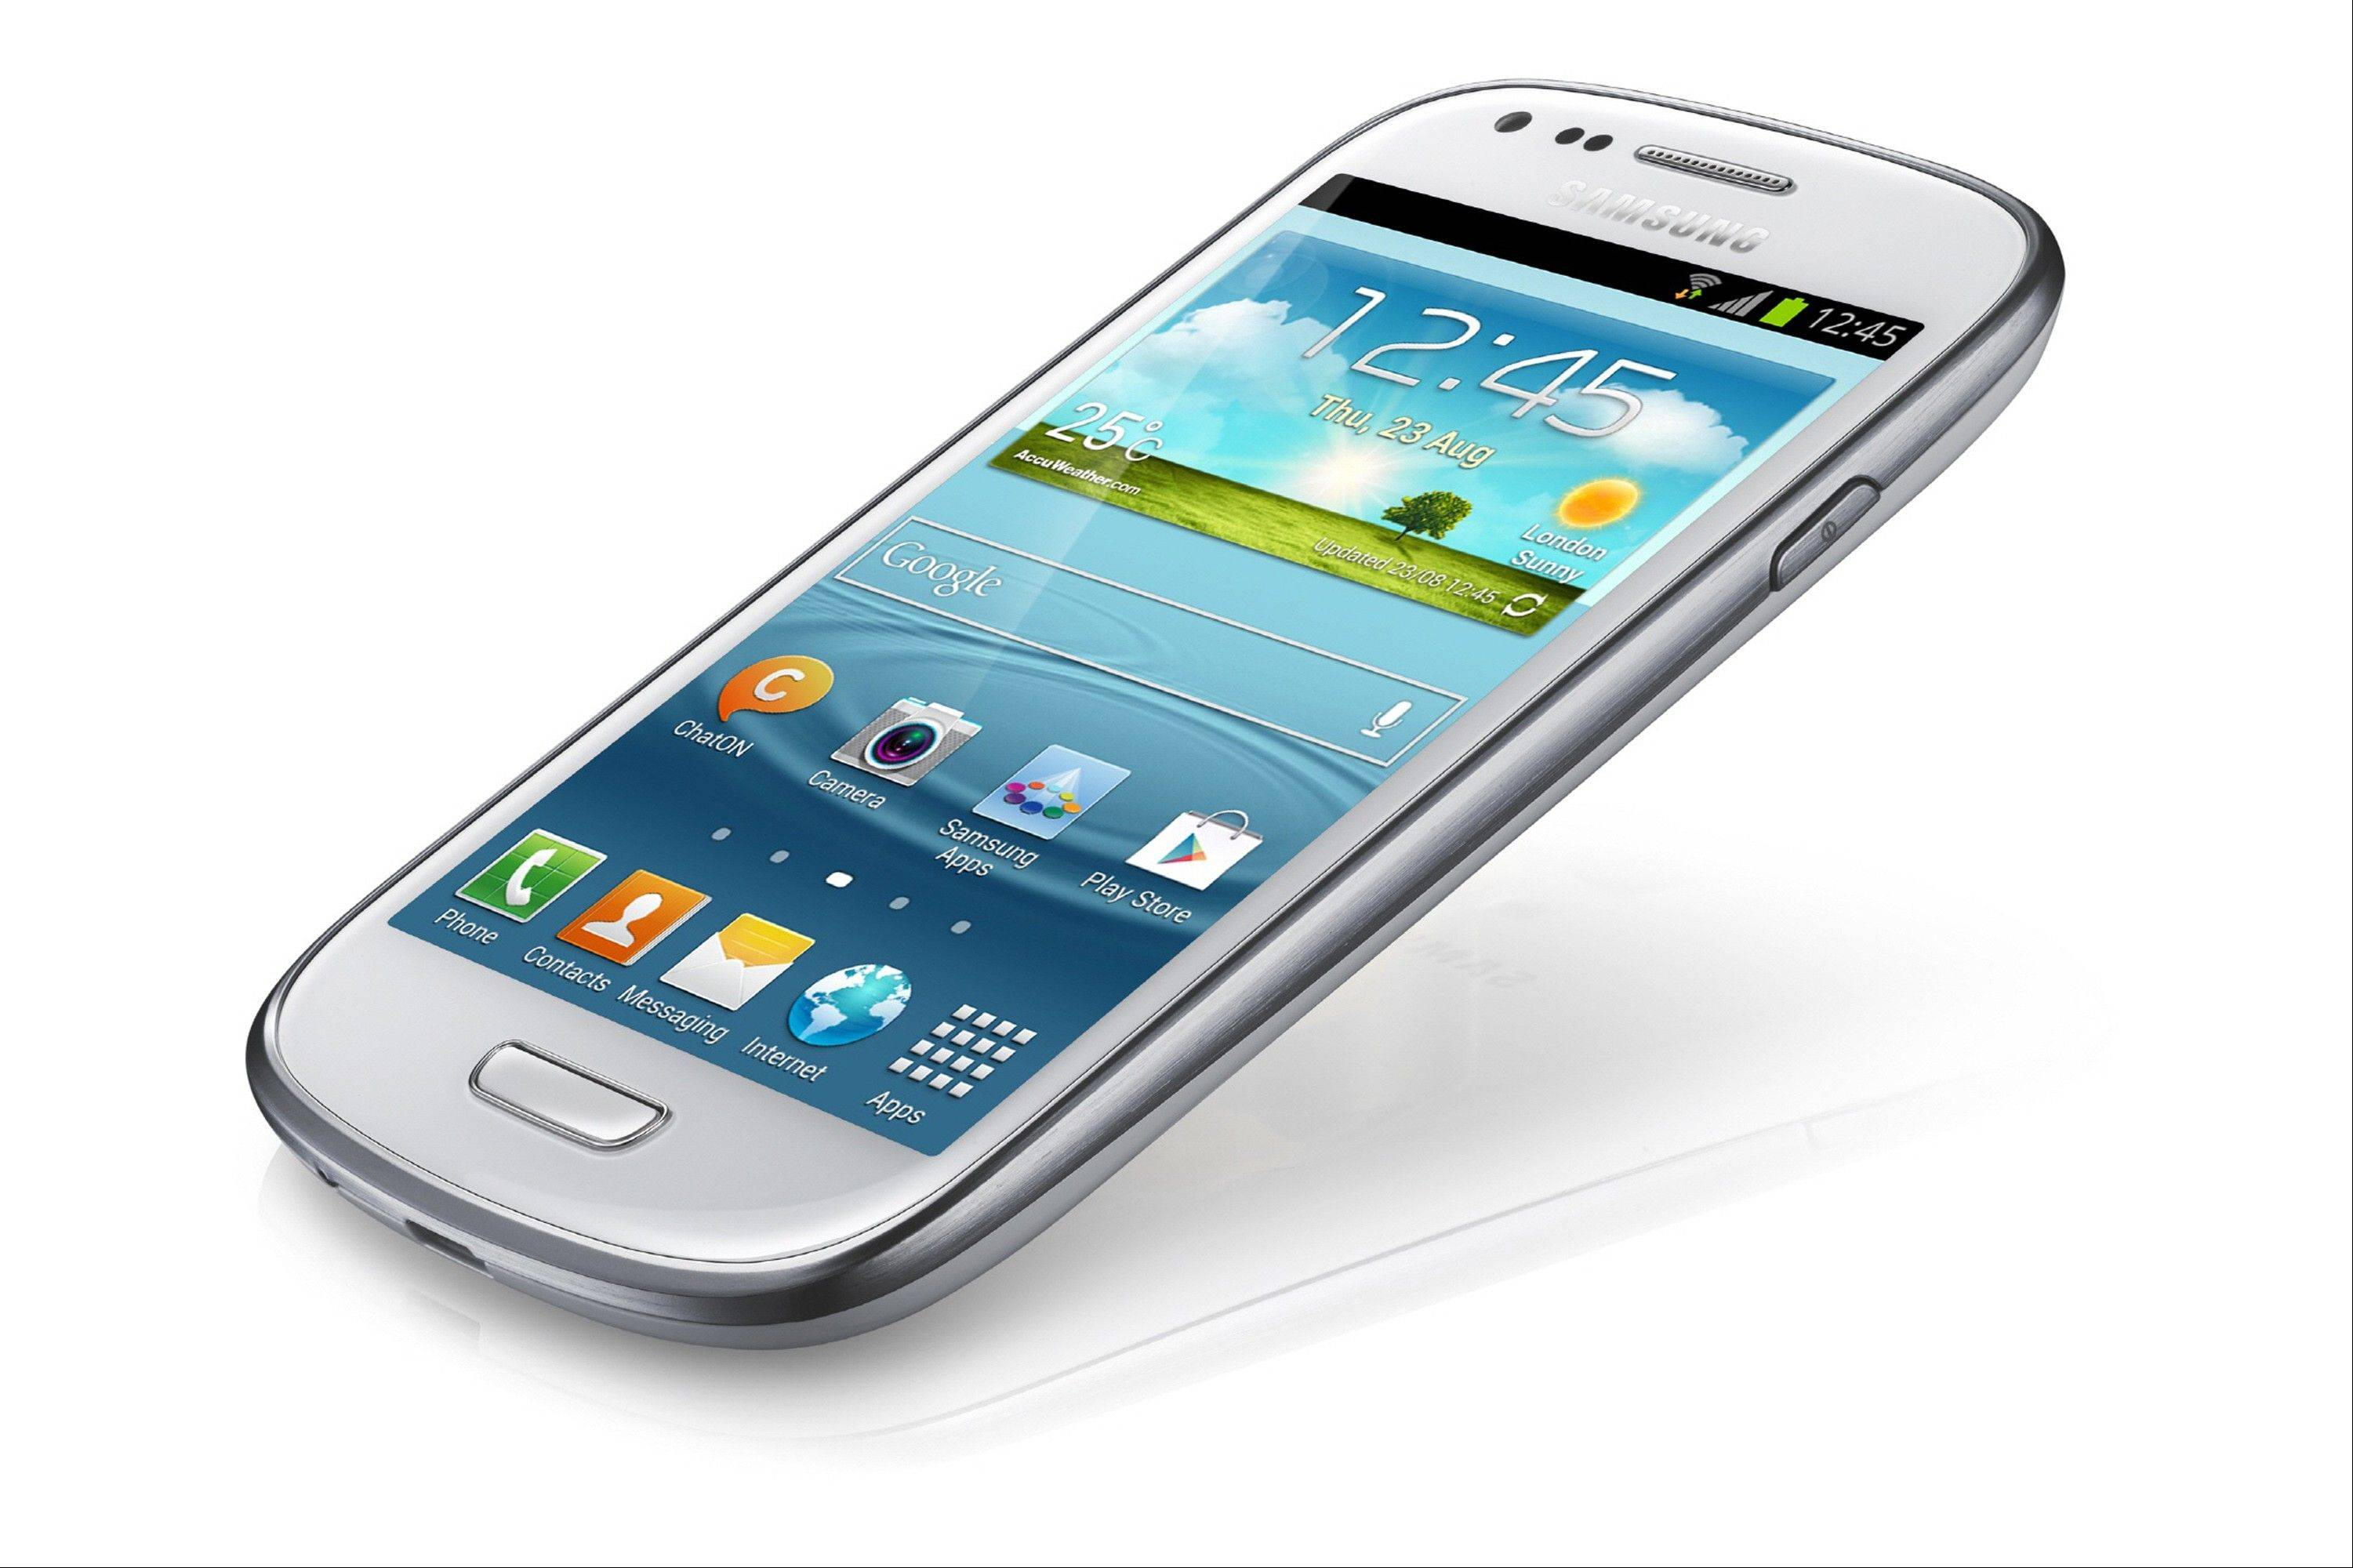 Samsung�s Galaxy S III mini. South Korean technology giant Samsung says the Galaxy S III mini features a screen measuring 4 inches diagonally, smaller than the Galaxy S III�s 4.8 inch display but the same as Apple�s iPhone 5, which was Apple�s first upgrade of the iPhone screen size.